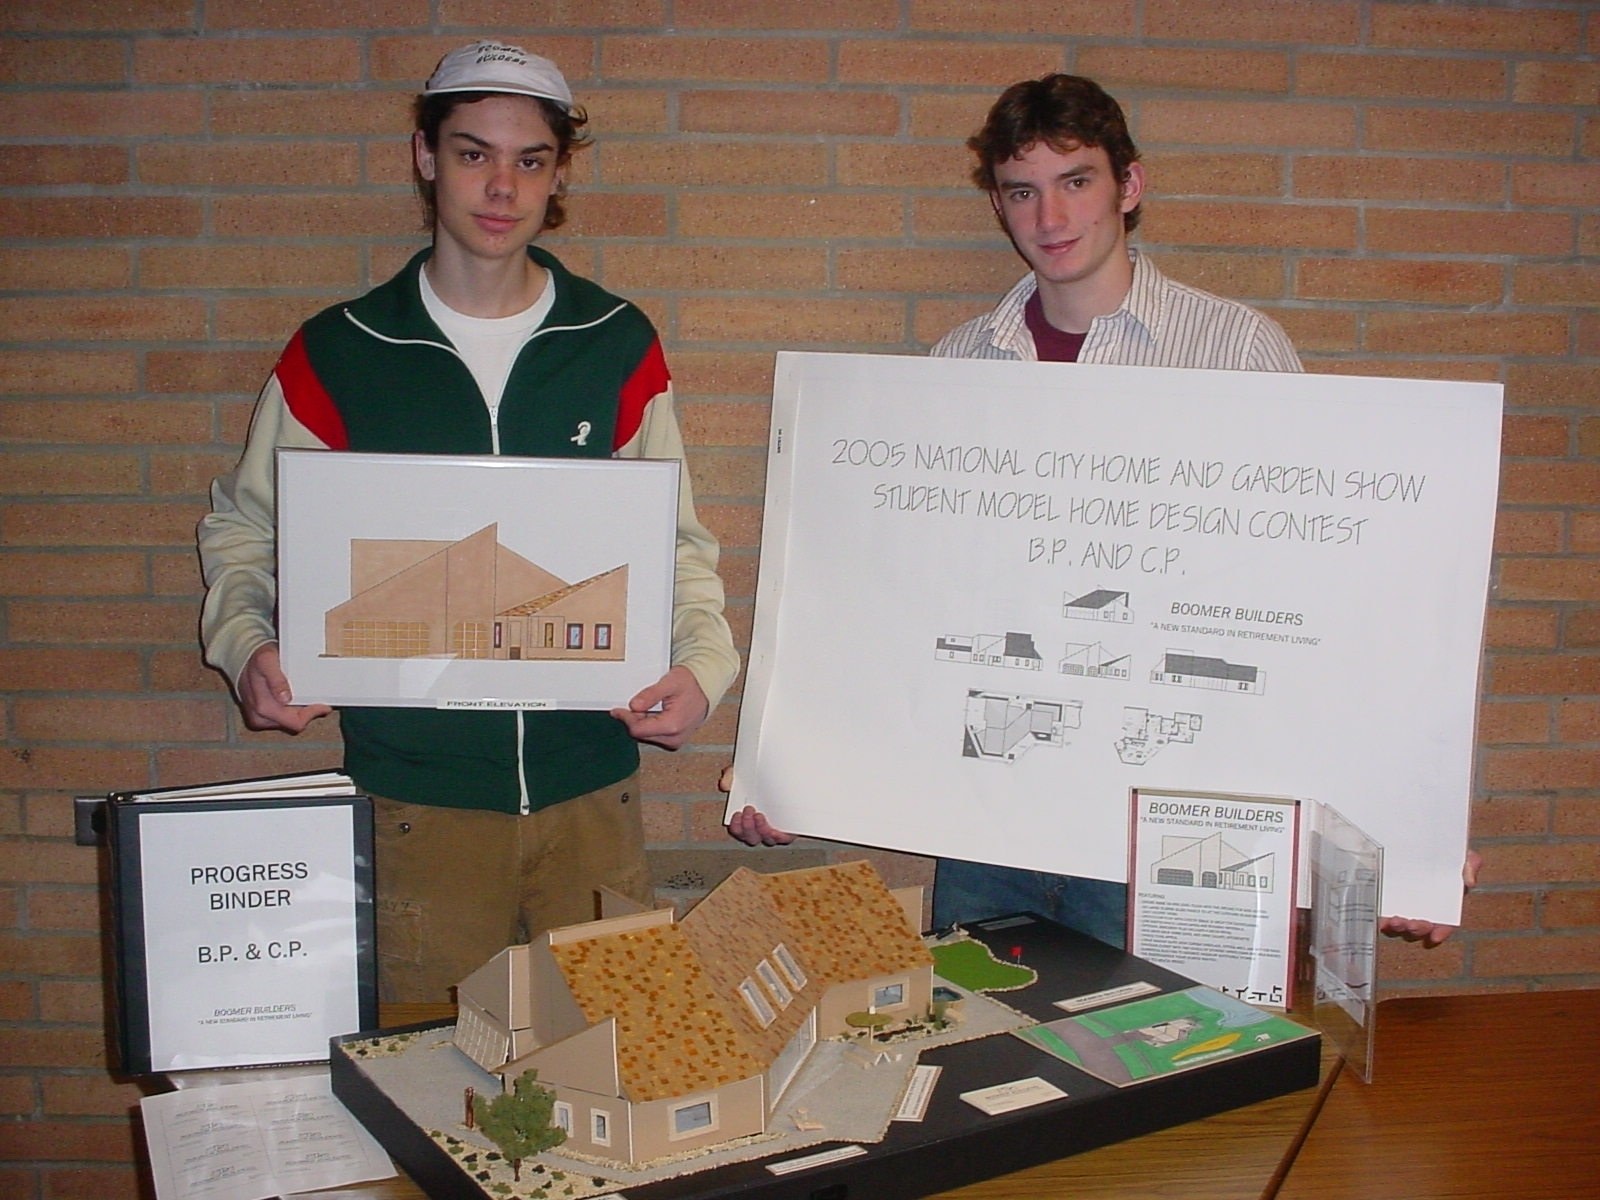 2005 Student Model Home Design Contest - Bear Pope & Charles Pelini - grand prize winners.